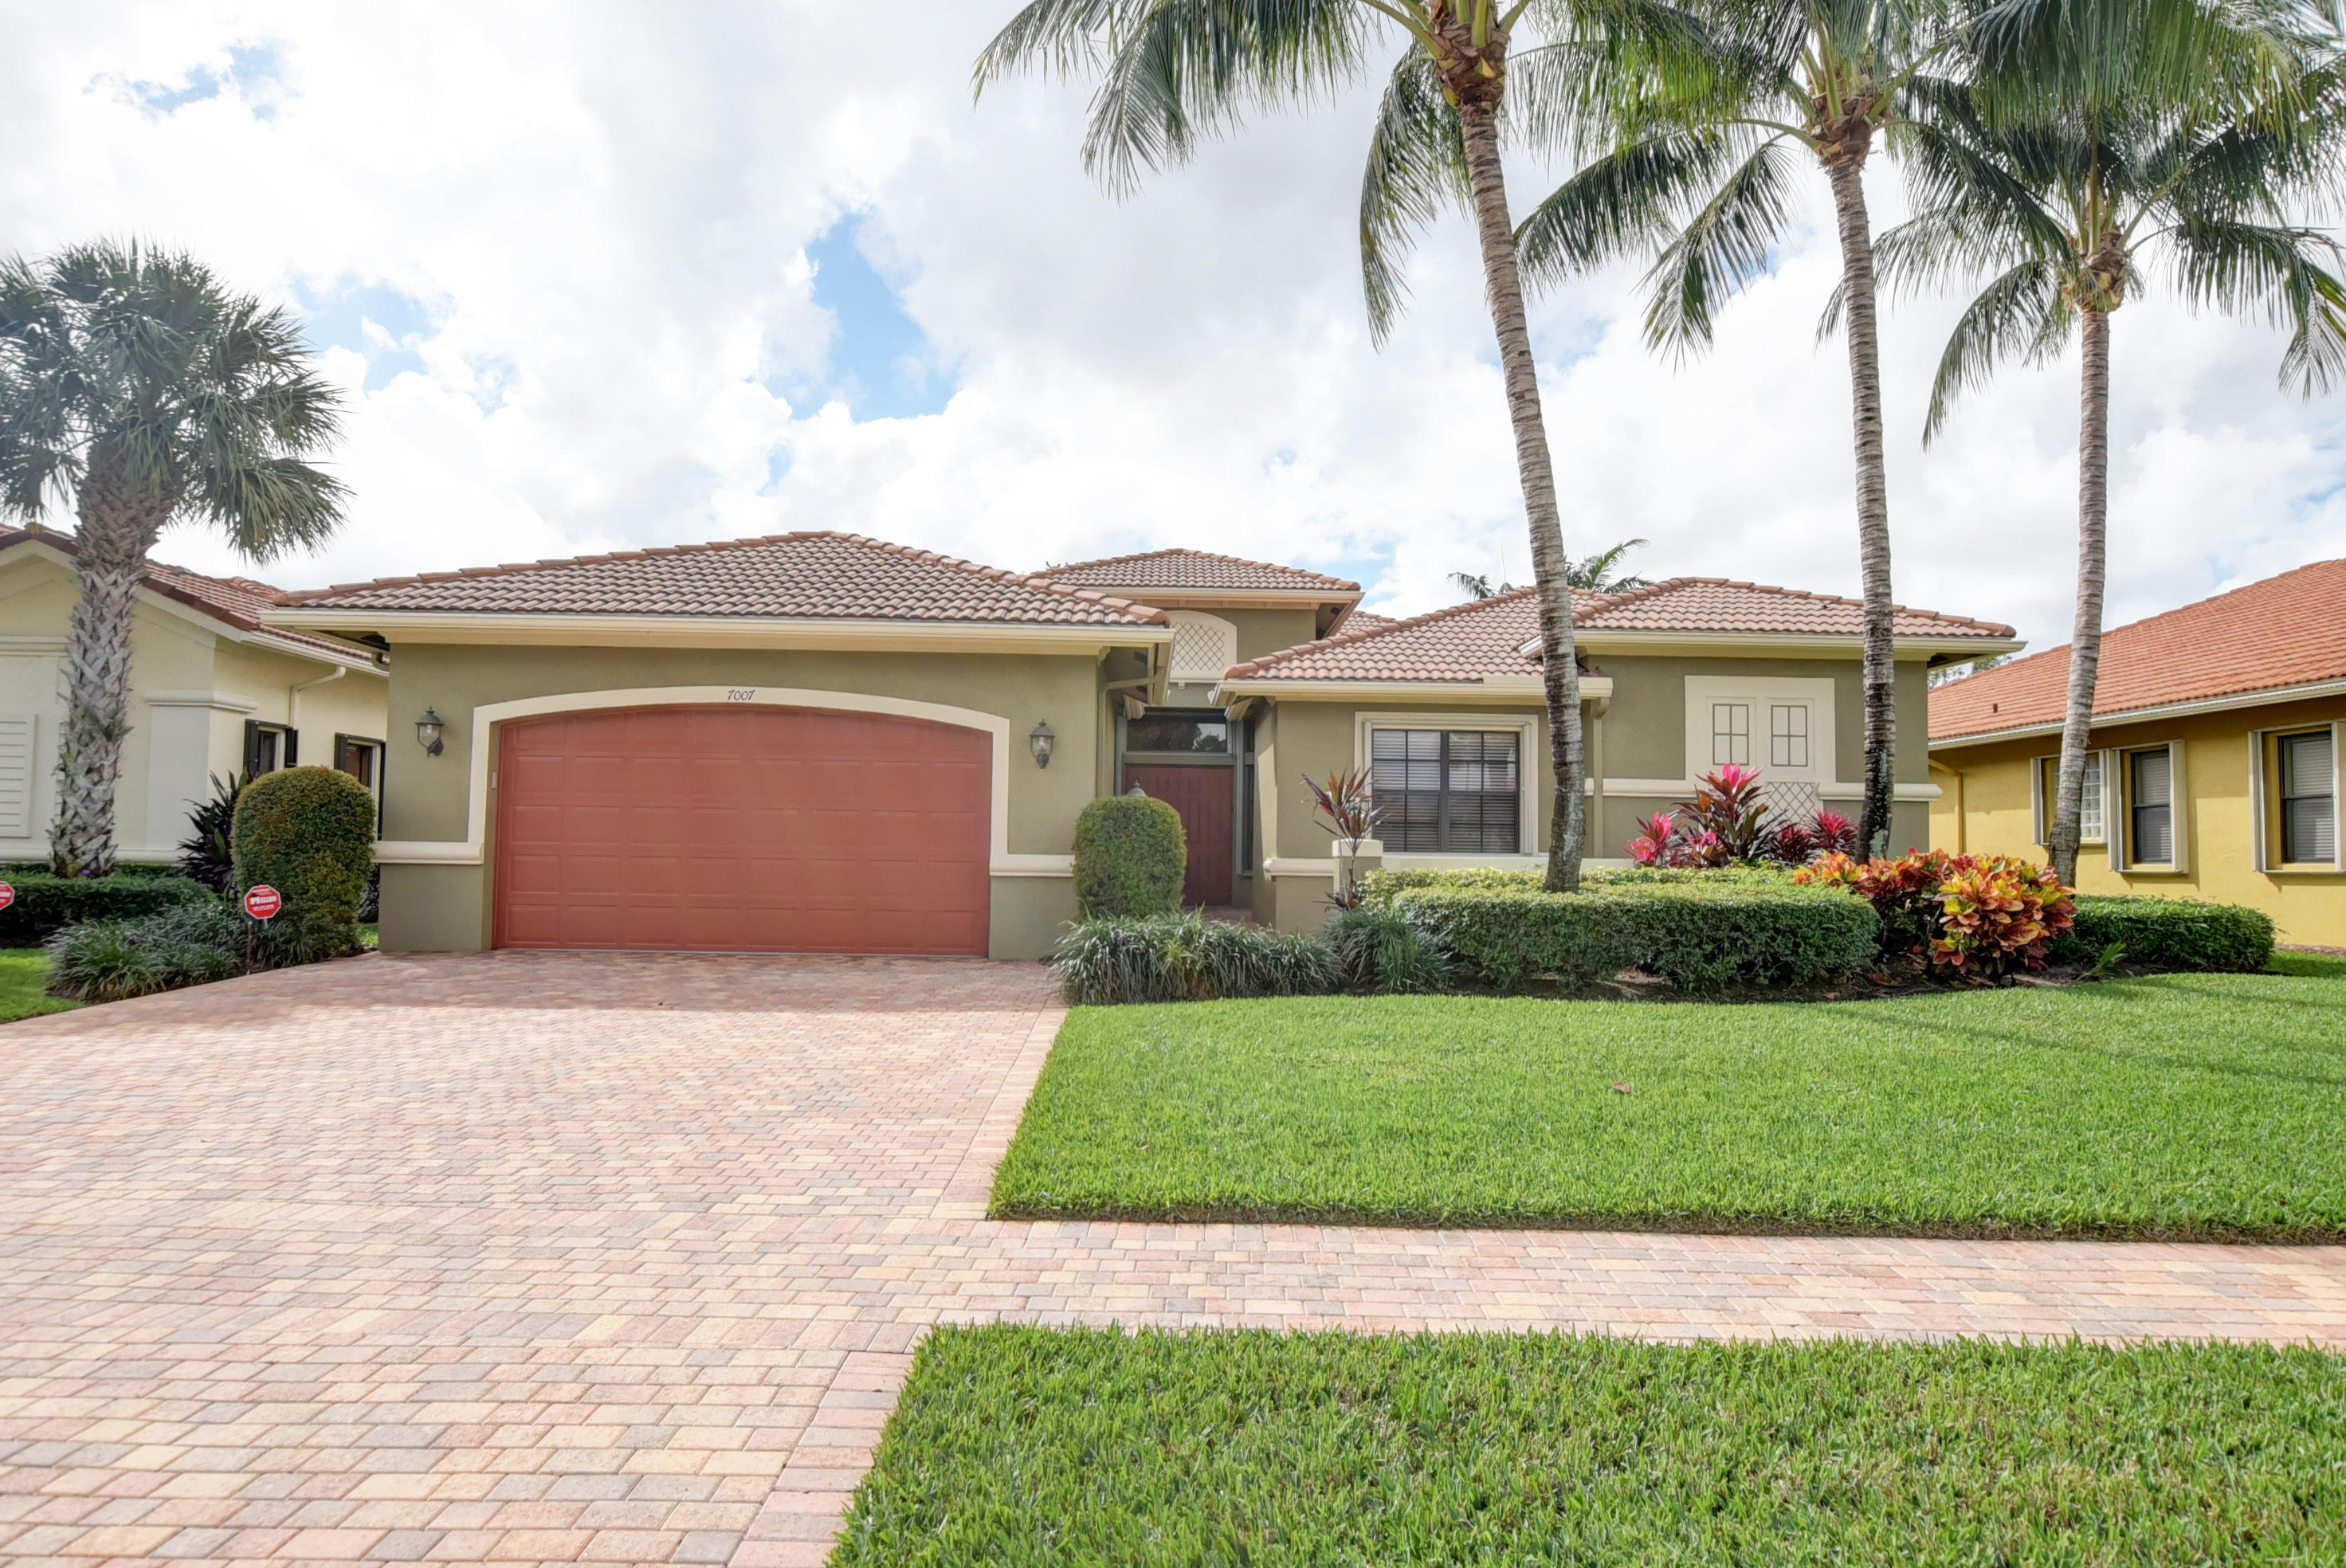 TIVOLI LAKES home 7007 Antinori Lane Boynton Beach FL 33437